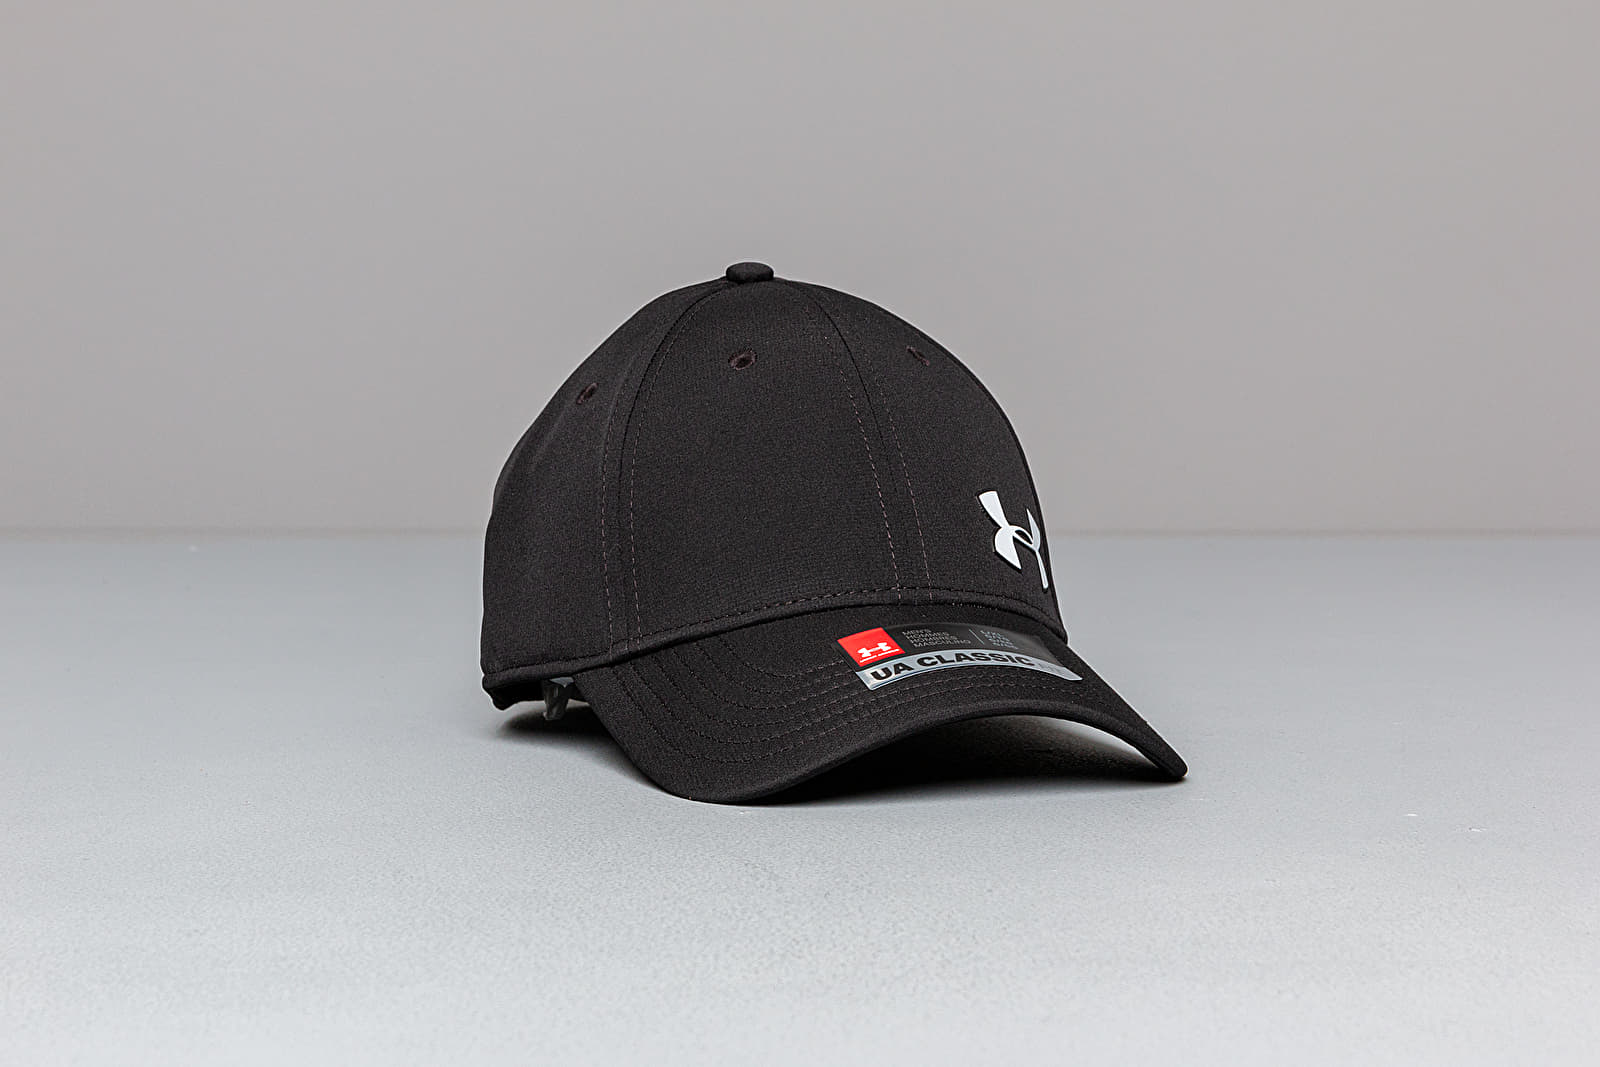 Caps Under Armour Shadow Cap 4.0 Black